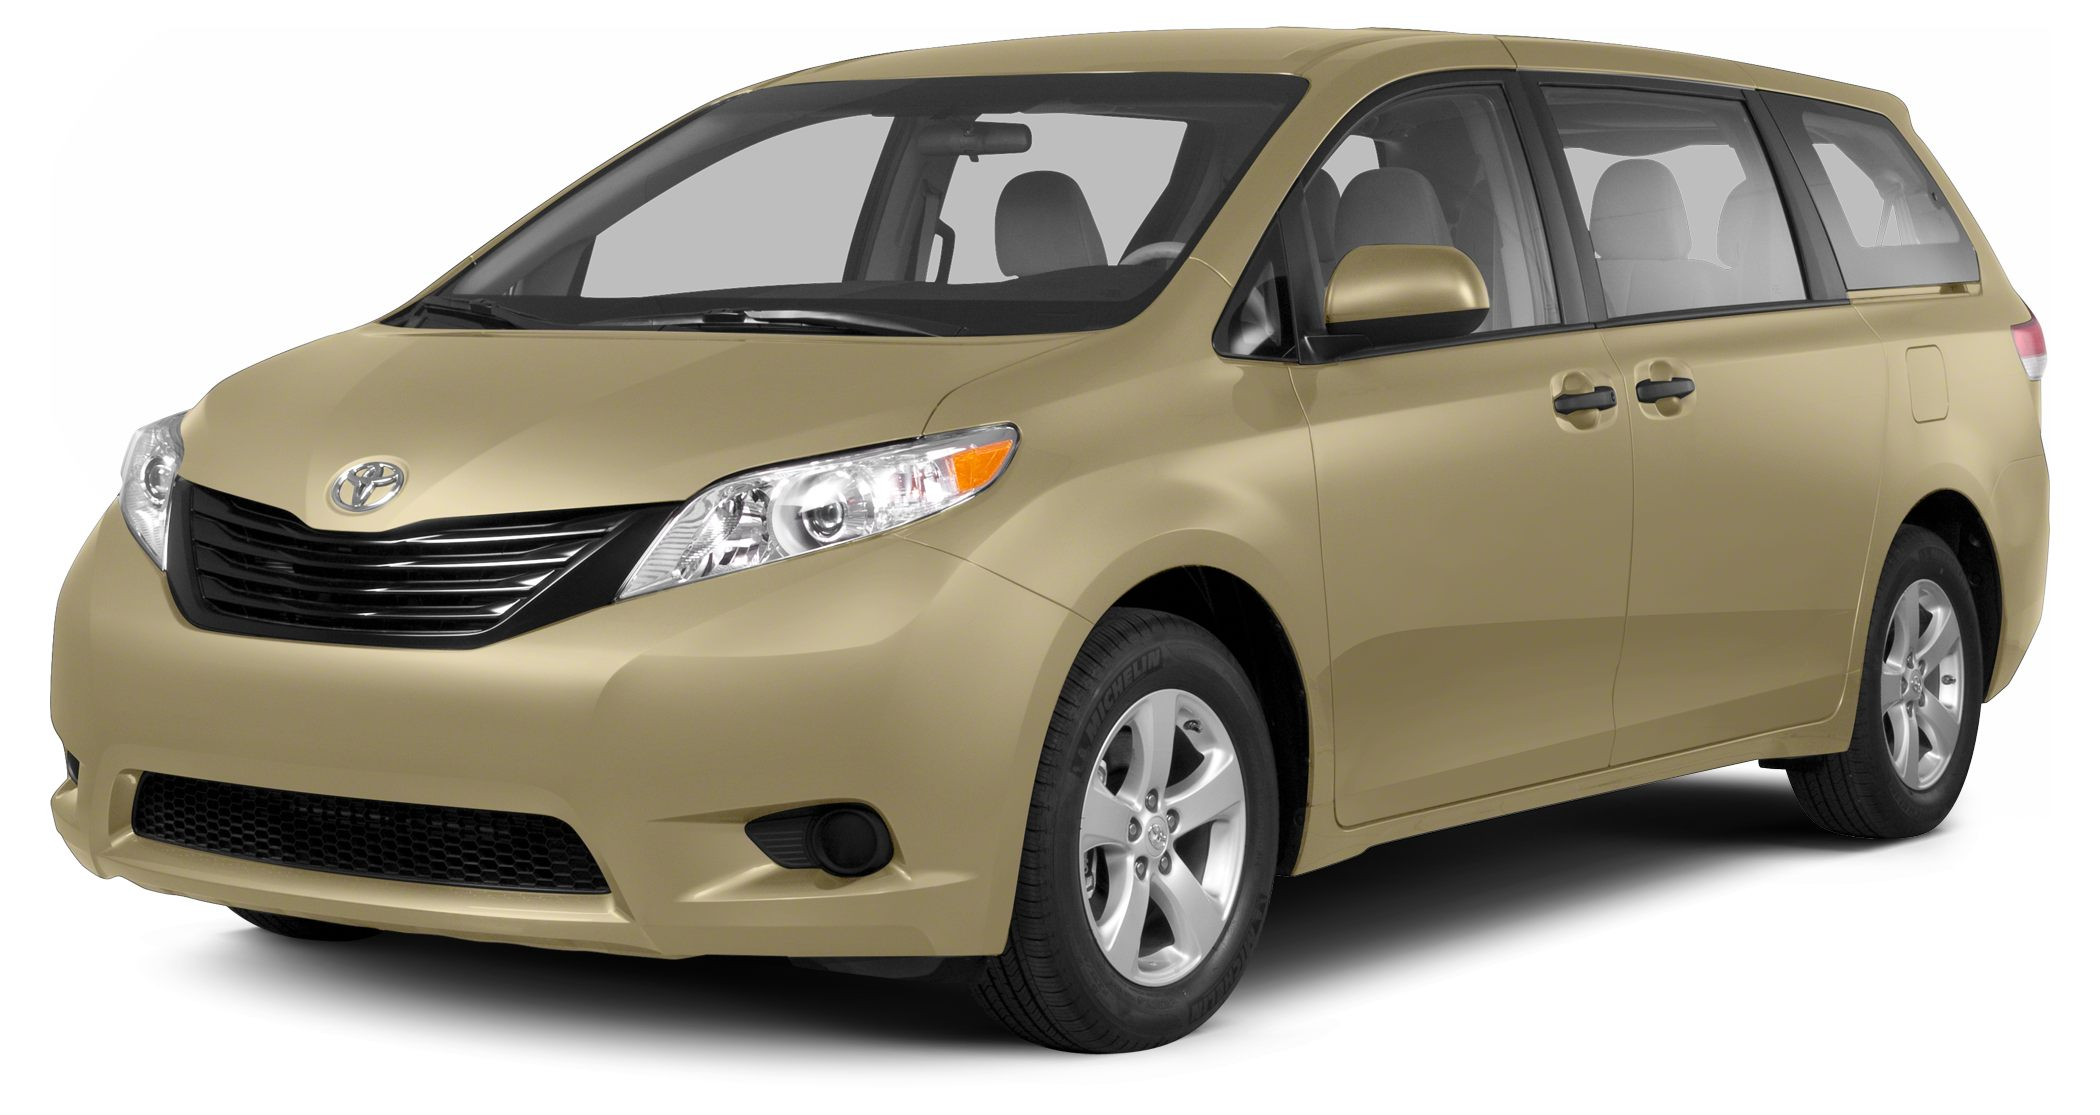 2013 Toyota Sienna LE 8 Passenger CARFAX 1-Owner EPA 25 MPG Hwy18 MPG City LE trim 3rd Row Sea